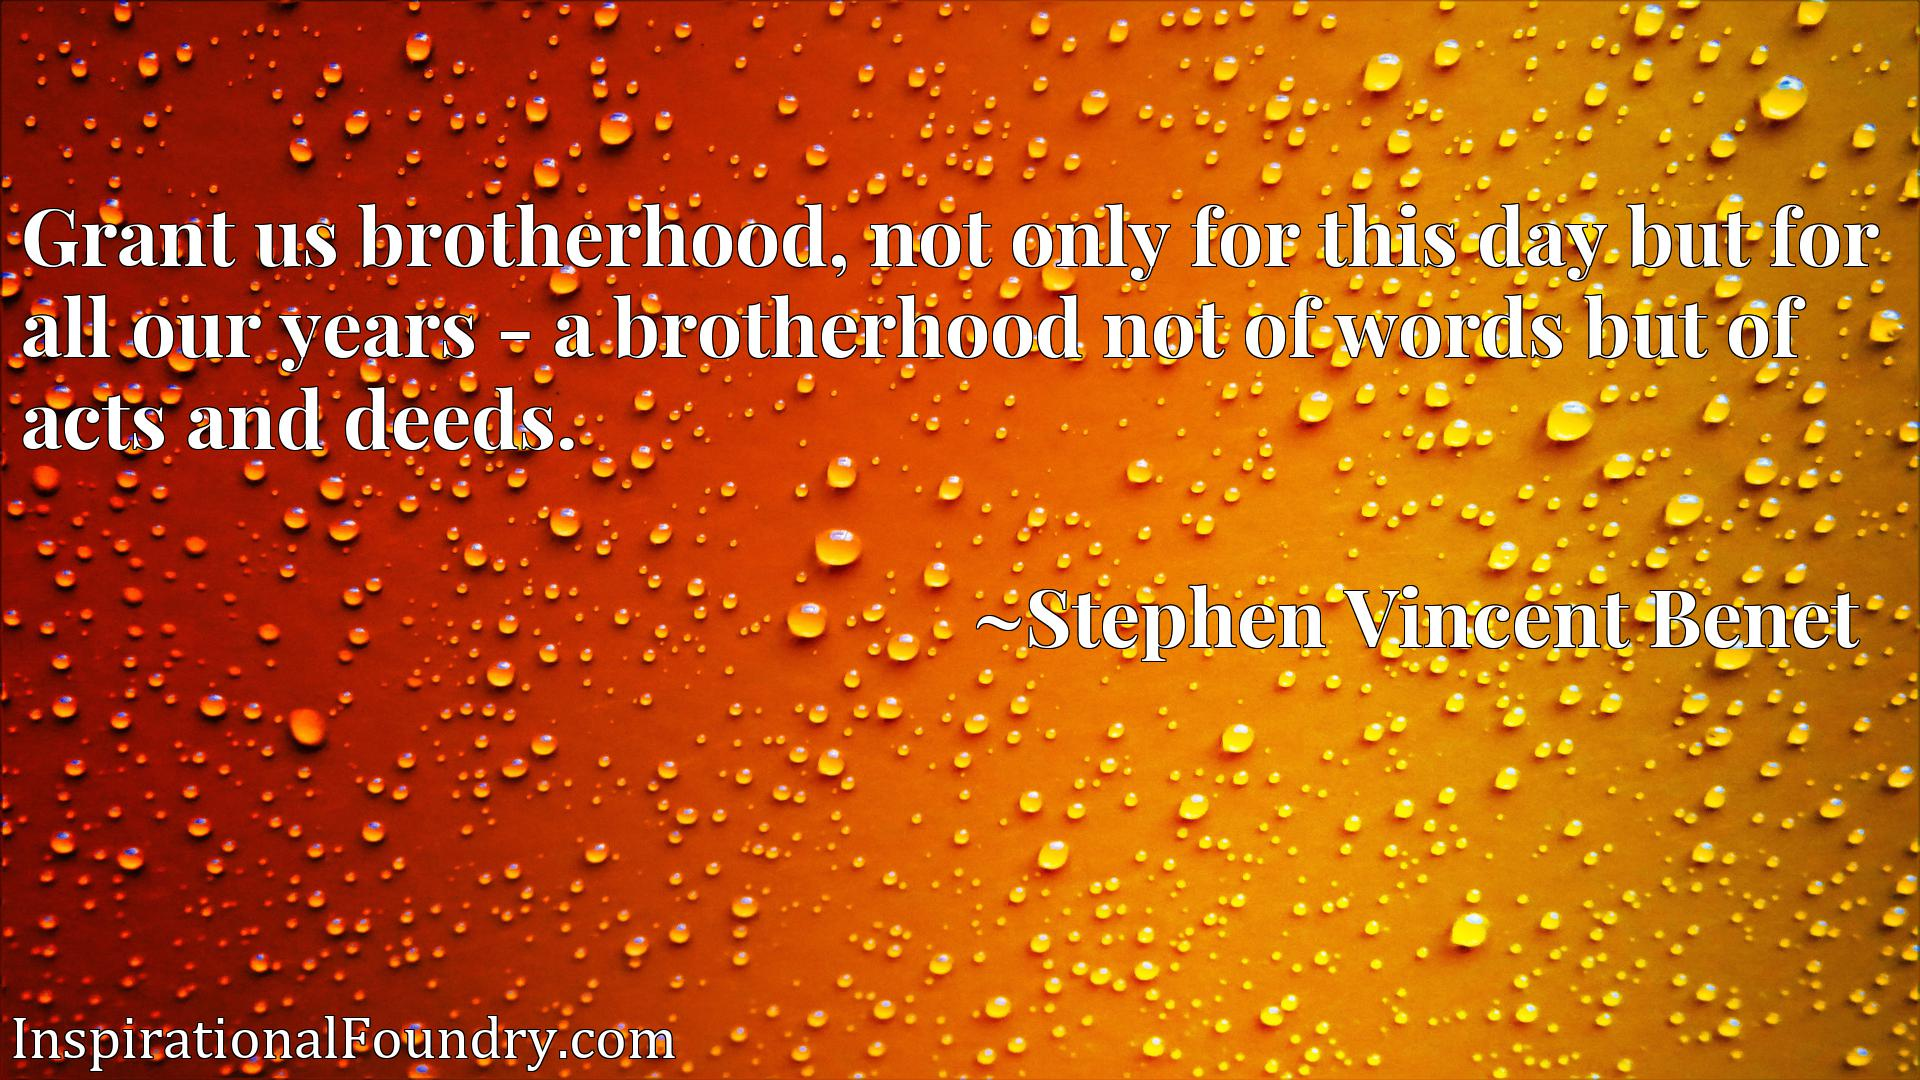 Grant us brotherhood, not only for this day but for all our years - a brotherhood not of words but of acts and deeds.